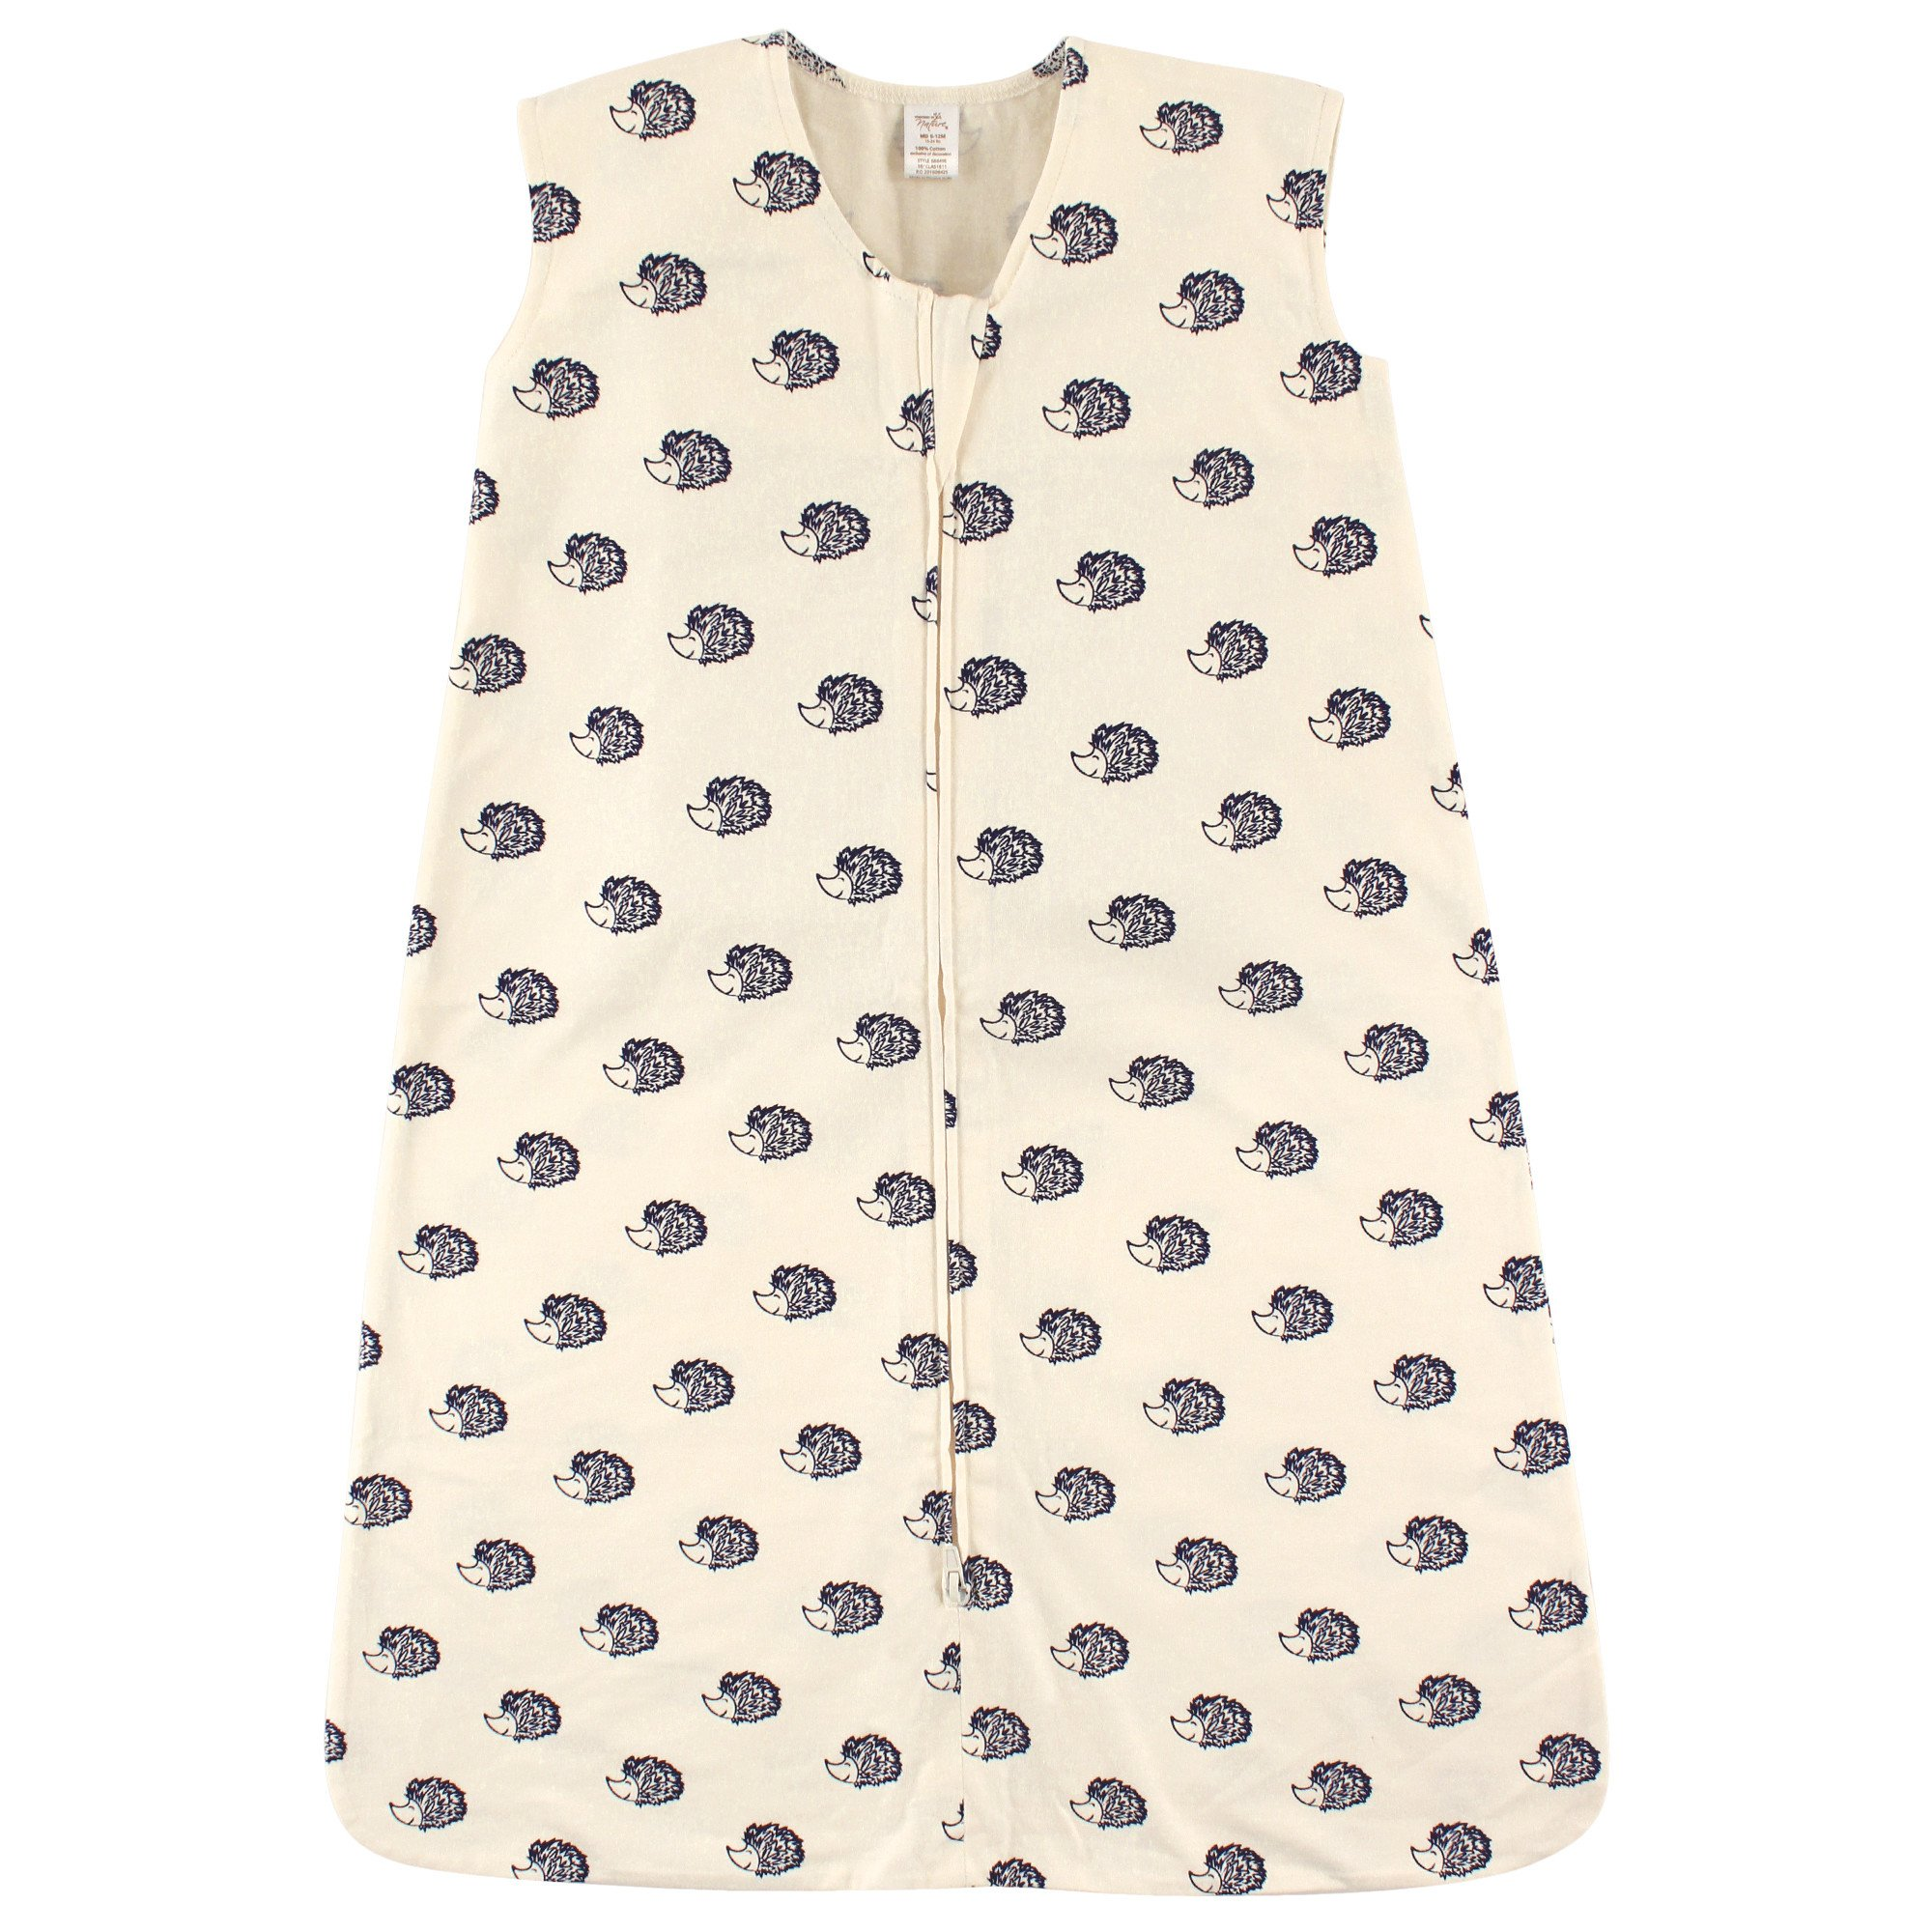 Touched by Nature Baby Organic Cotton Wearable Safe